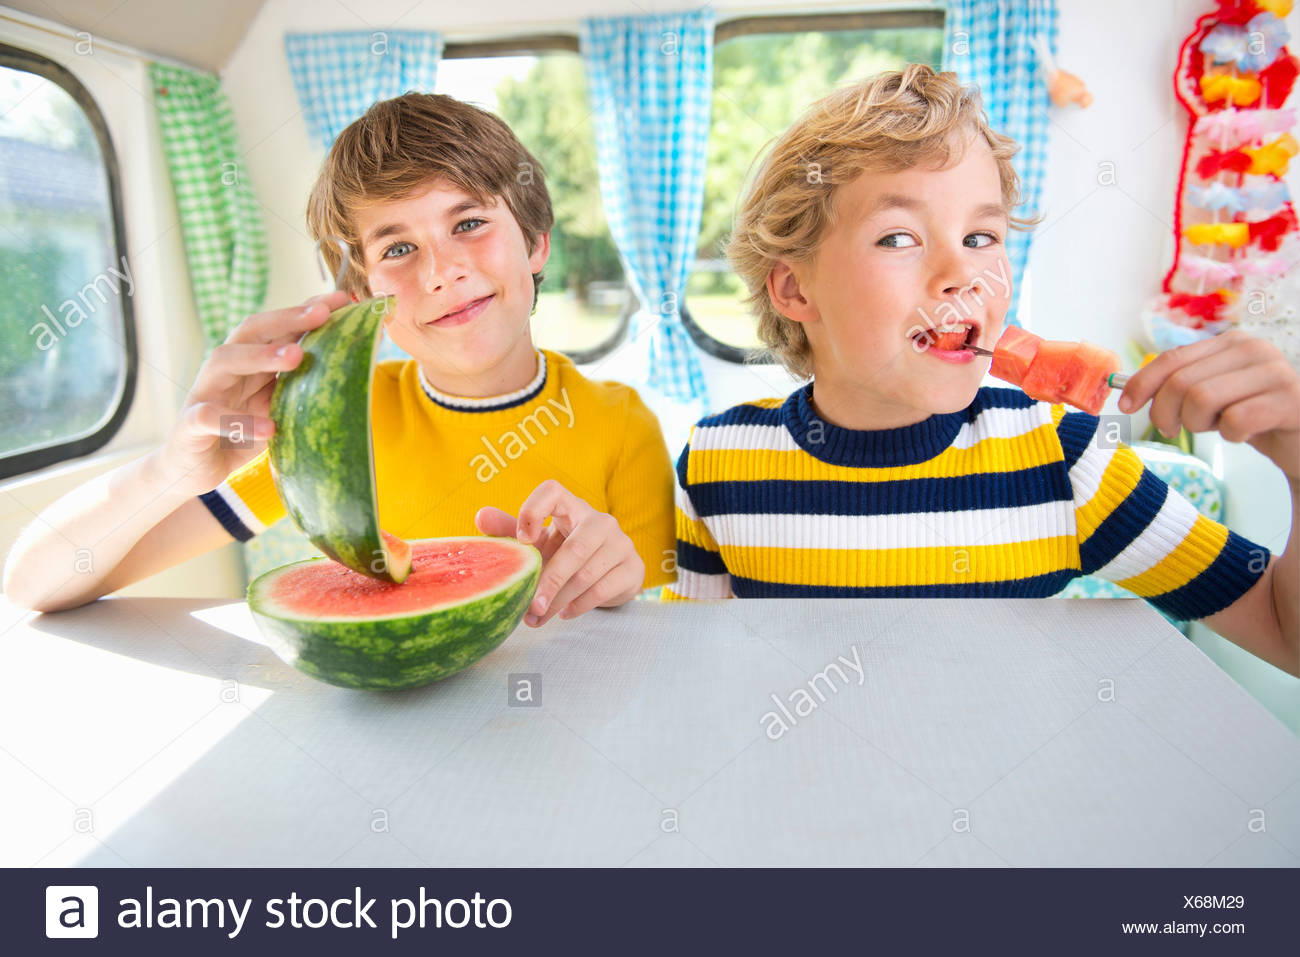 Boys eating watermelon in caravan, portrait - Stock Image